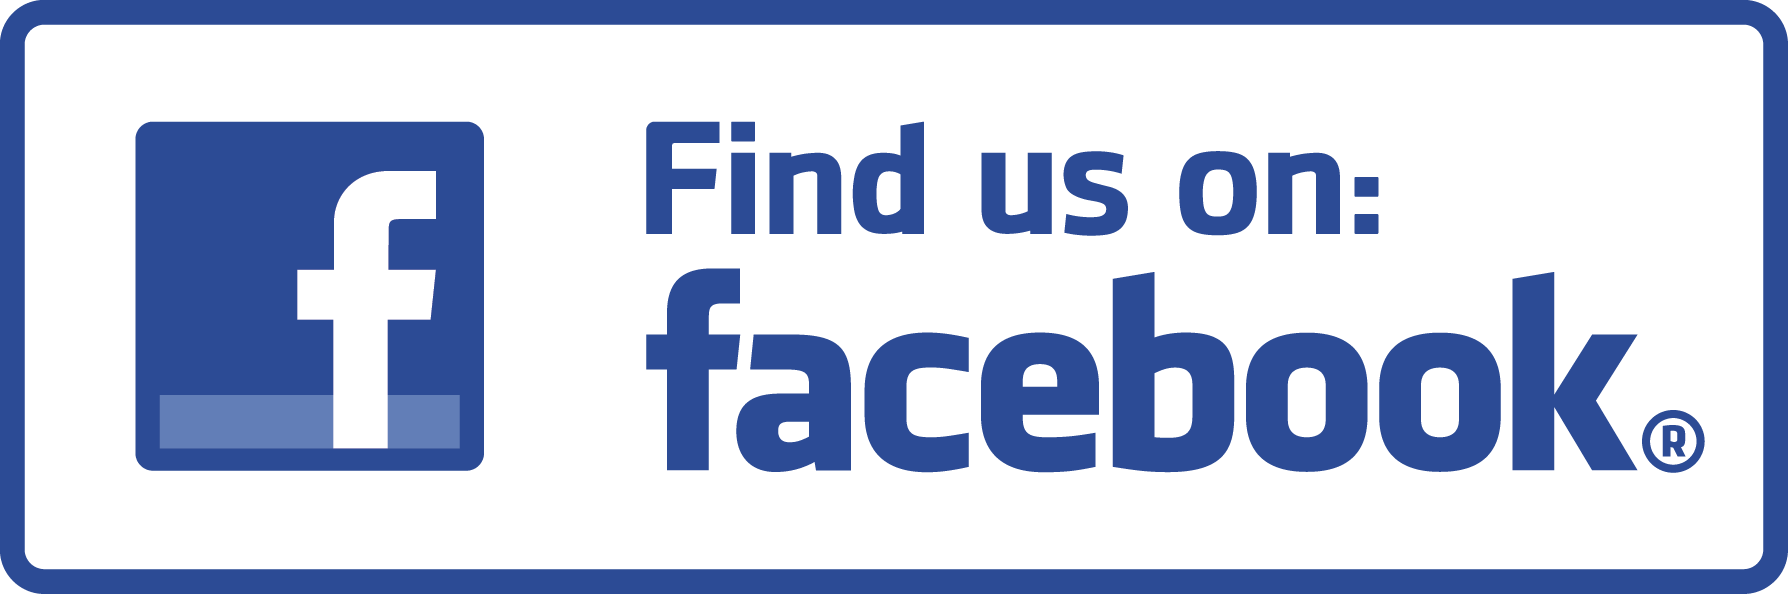 Follow the Library on Facebook